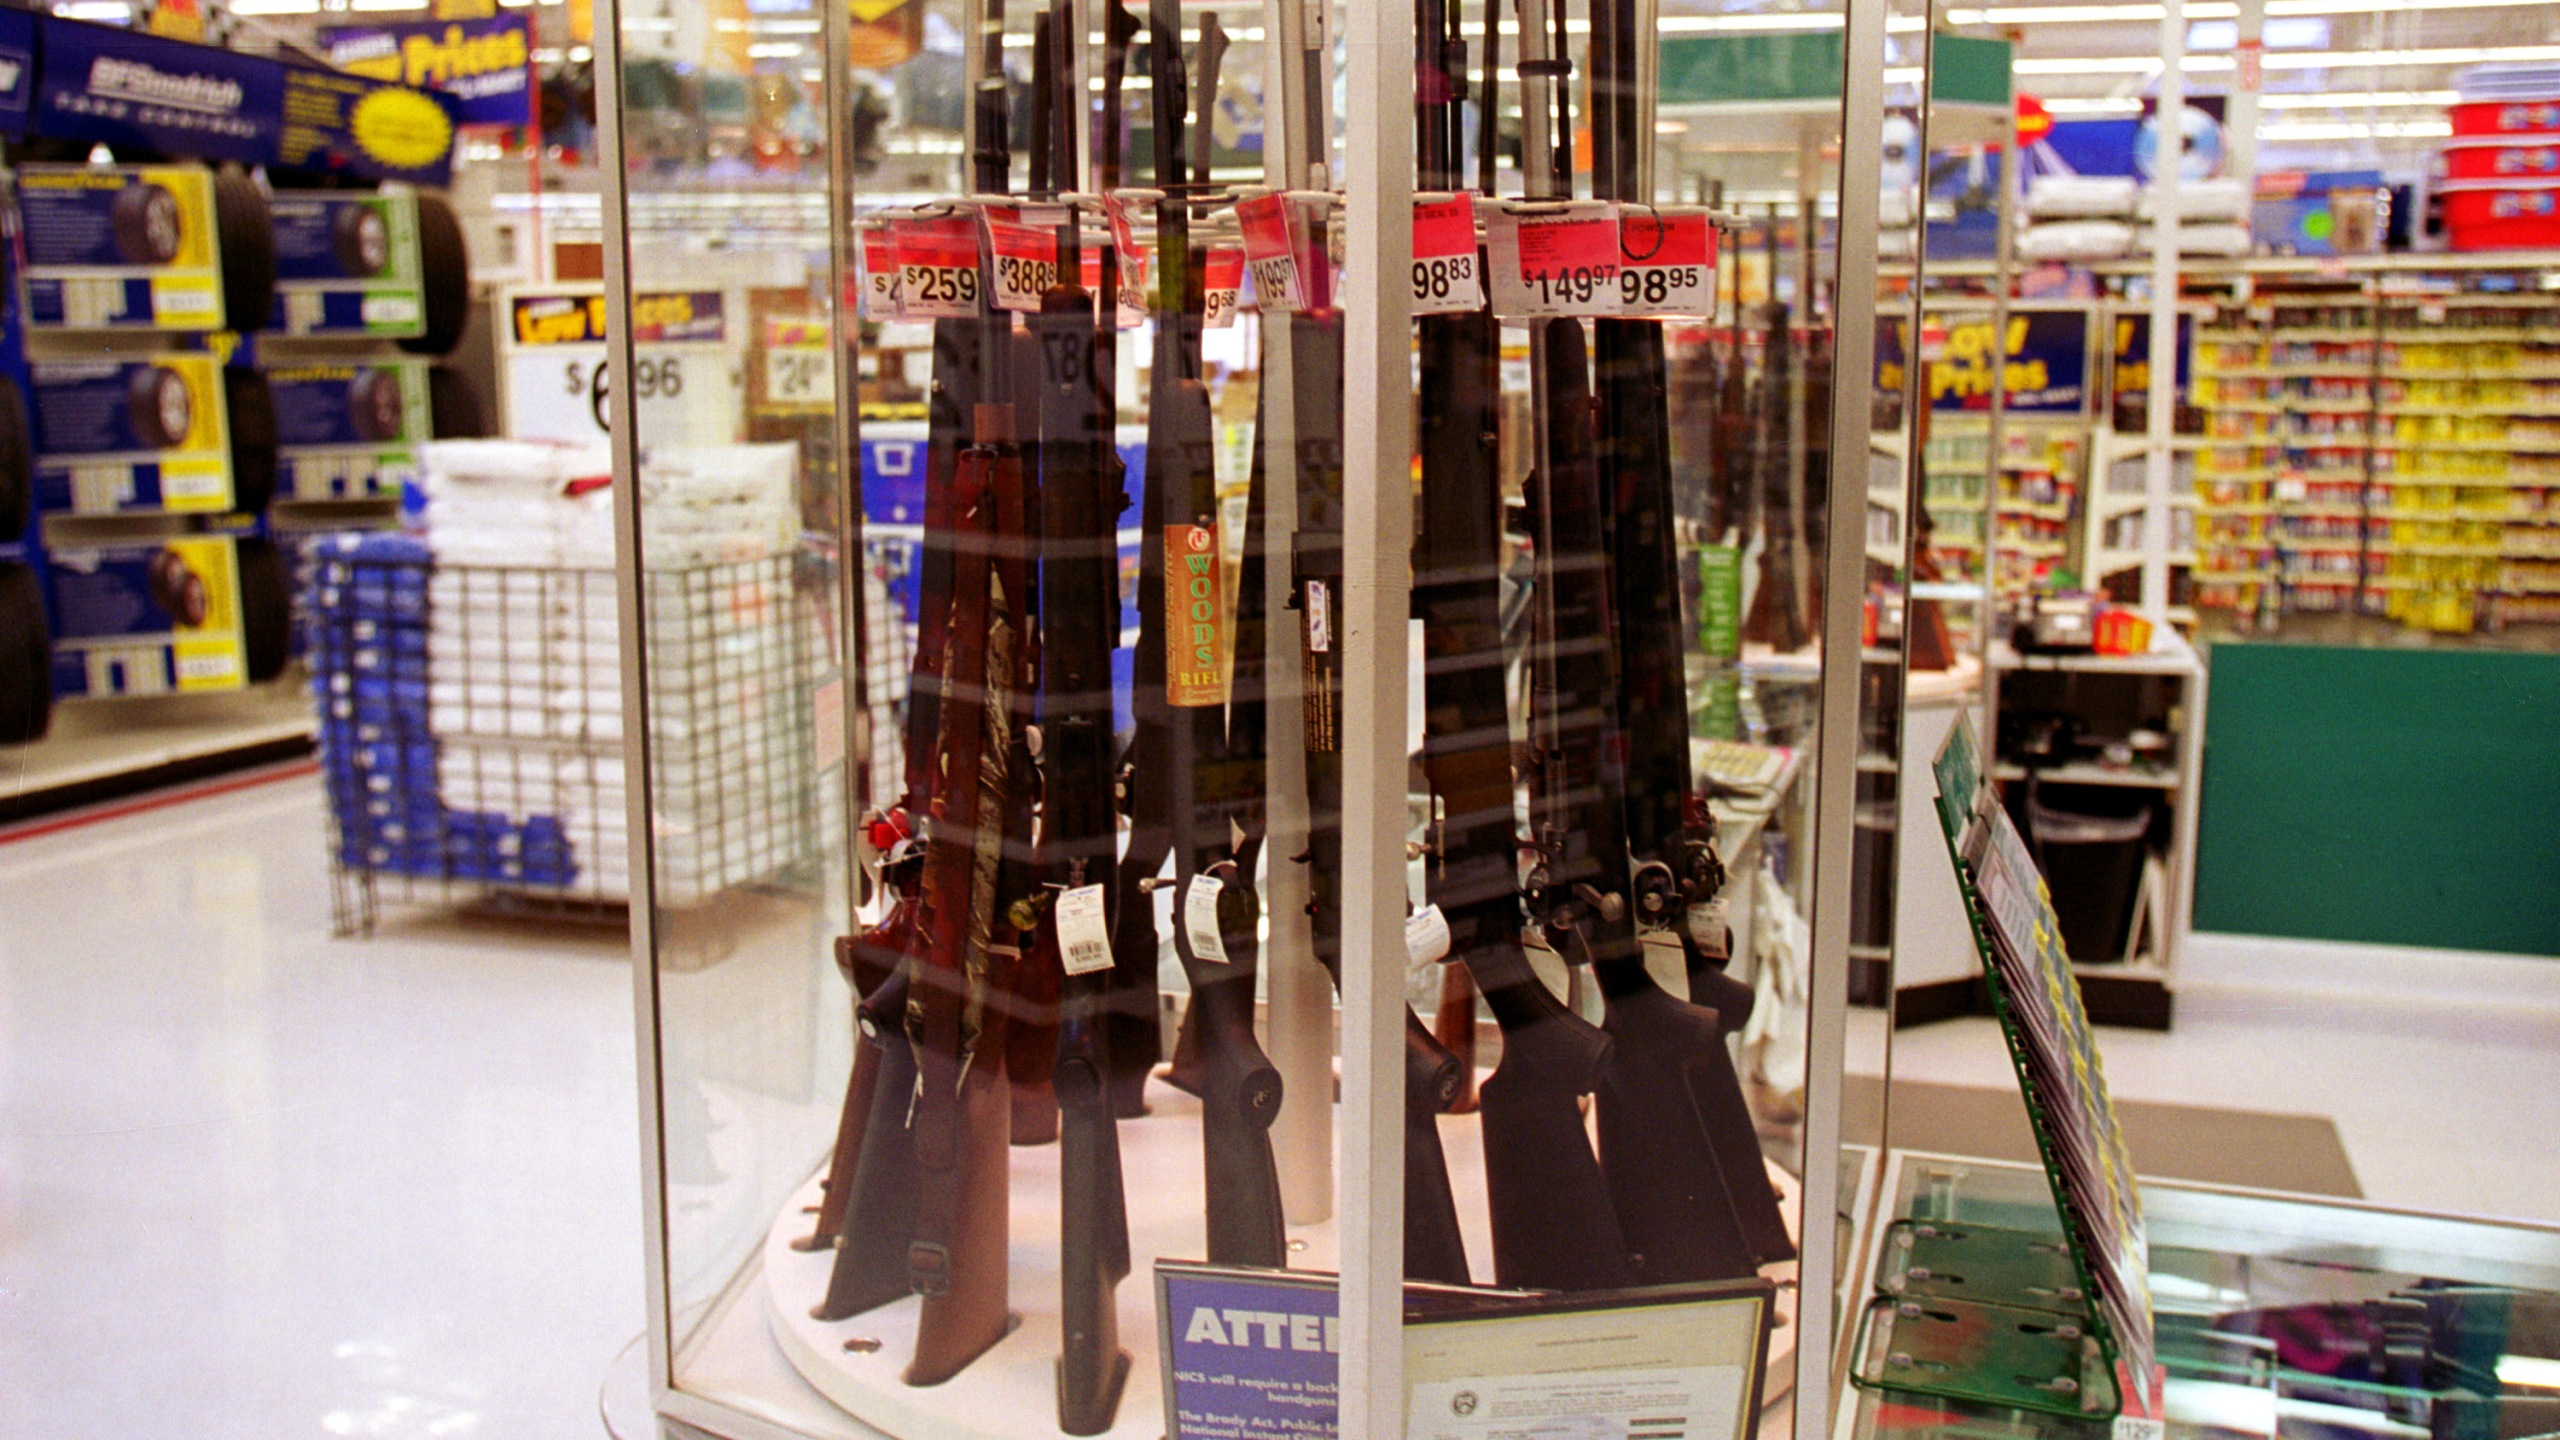 Guns for sale at a Walmart, July 19, 2000. (Credit: by Newsmakers)